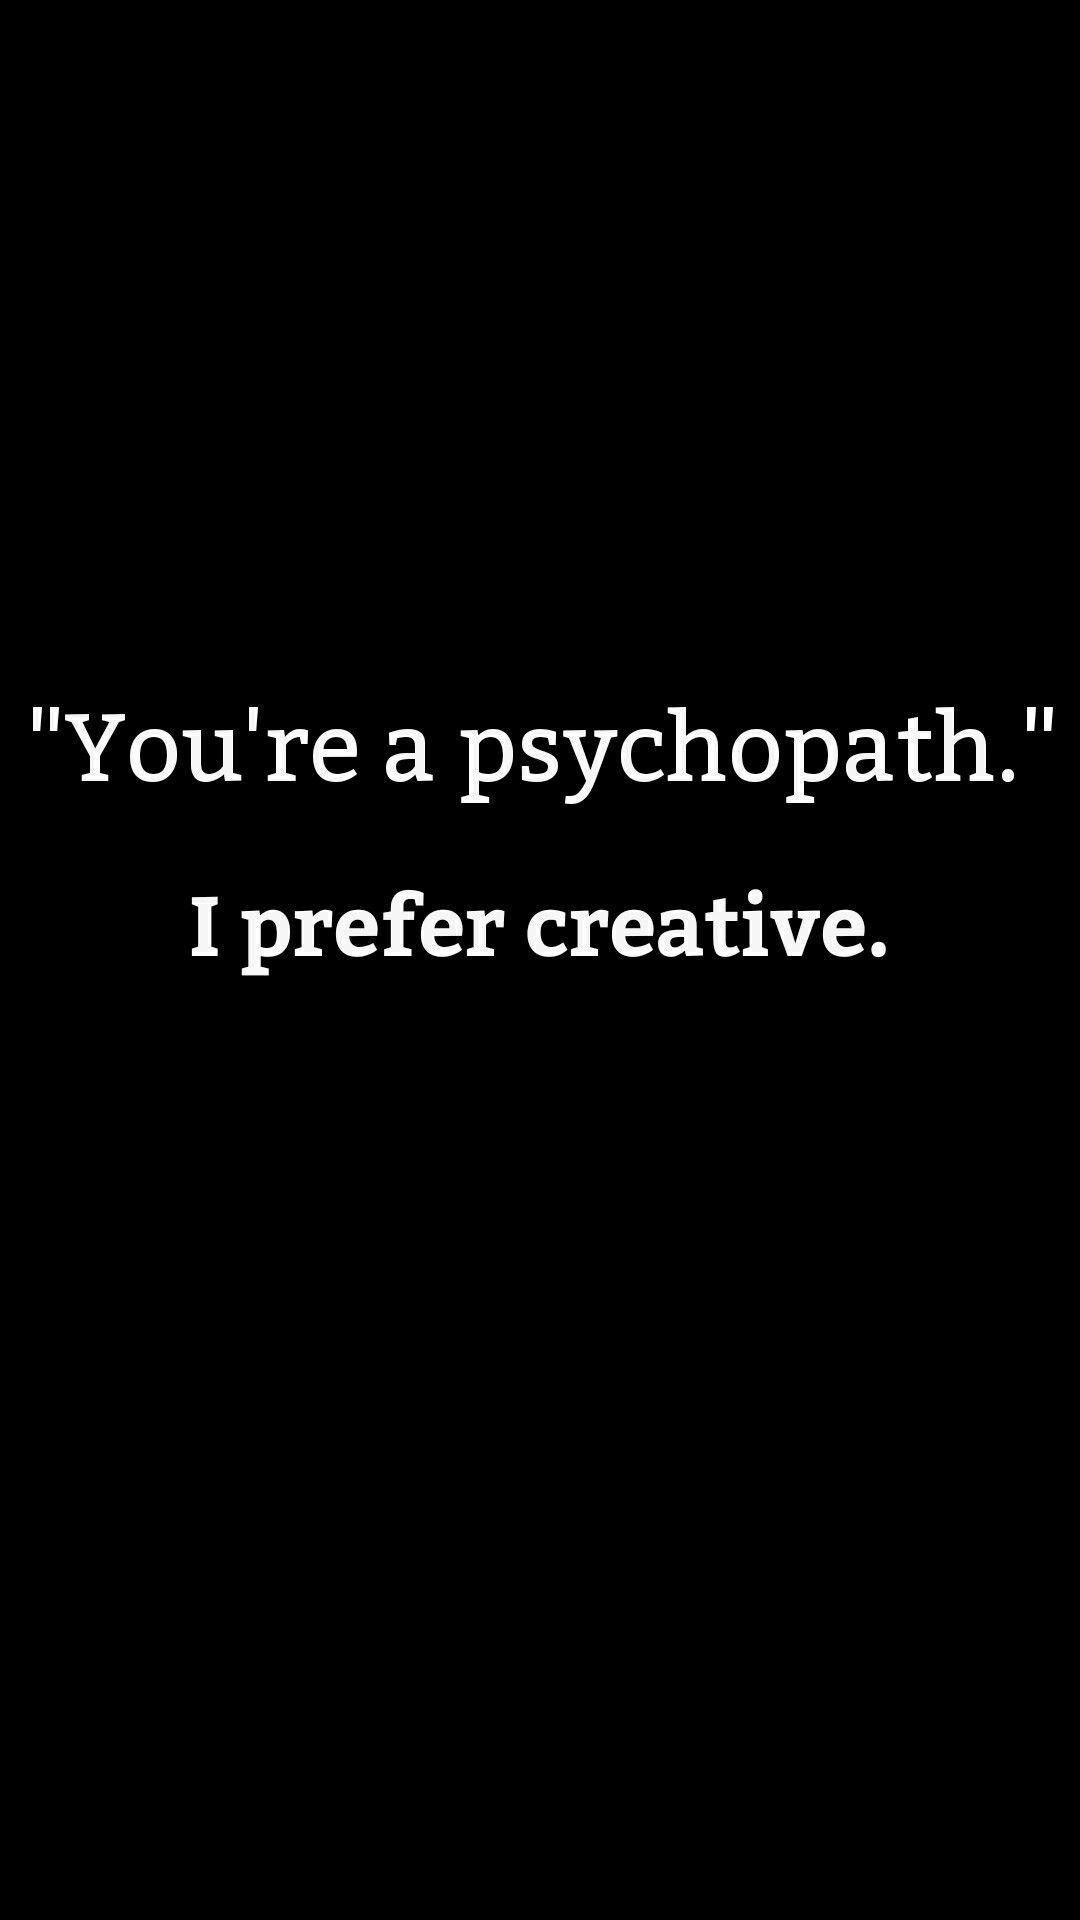 Psychopath or Creative? Which one are you? | Quotes | Wallpaper ...